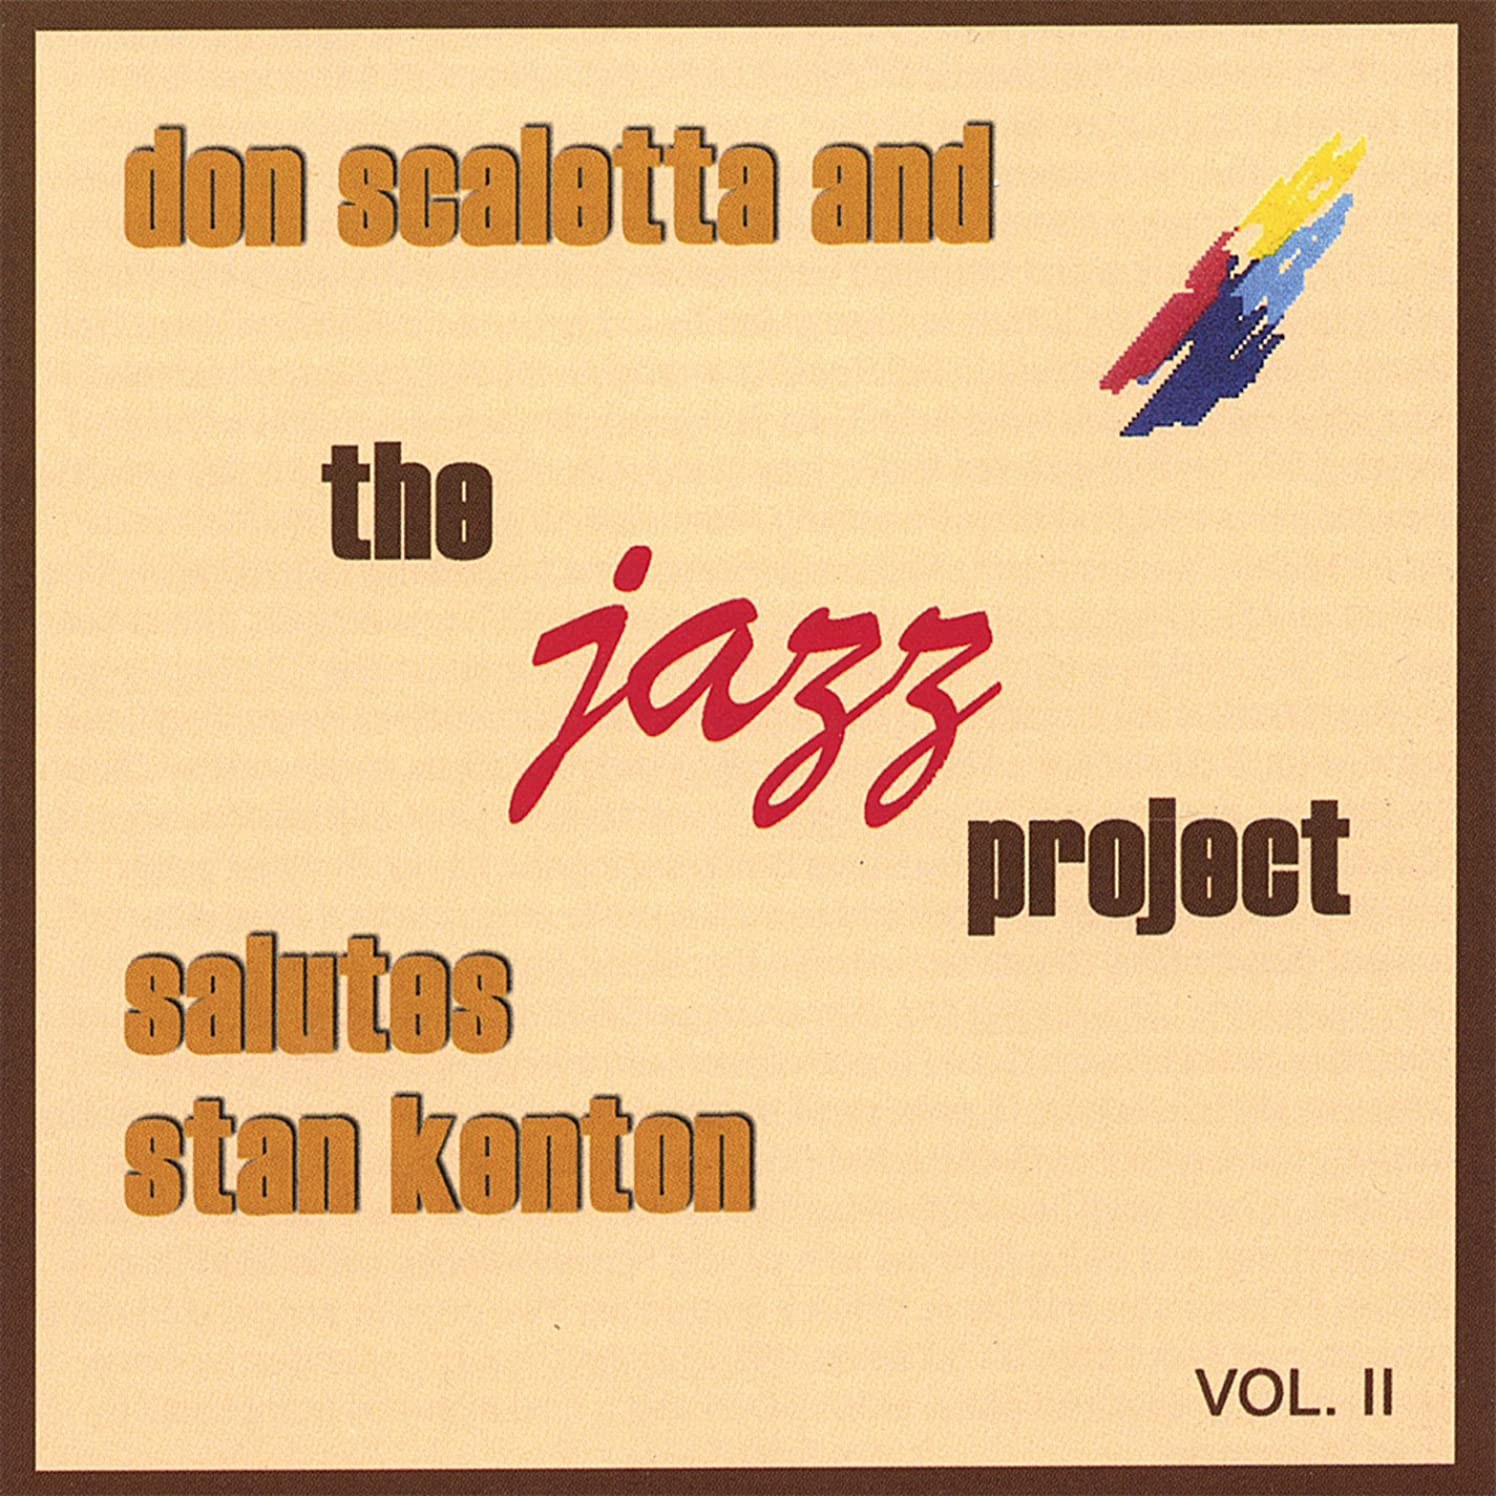 Don Scaletta and the Jazz Project Salutes Stan Kenton, Vol. 2